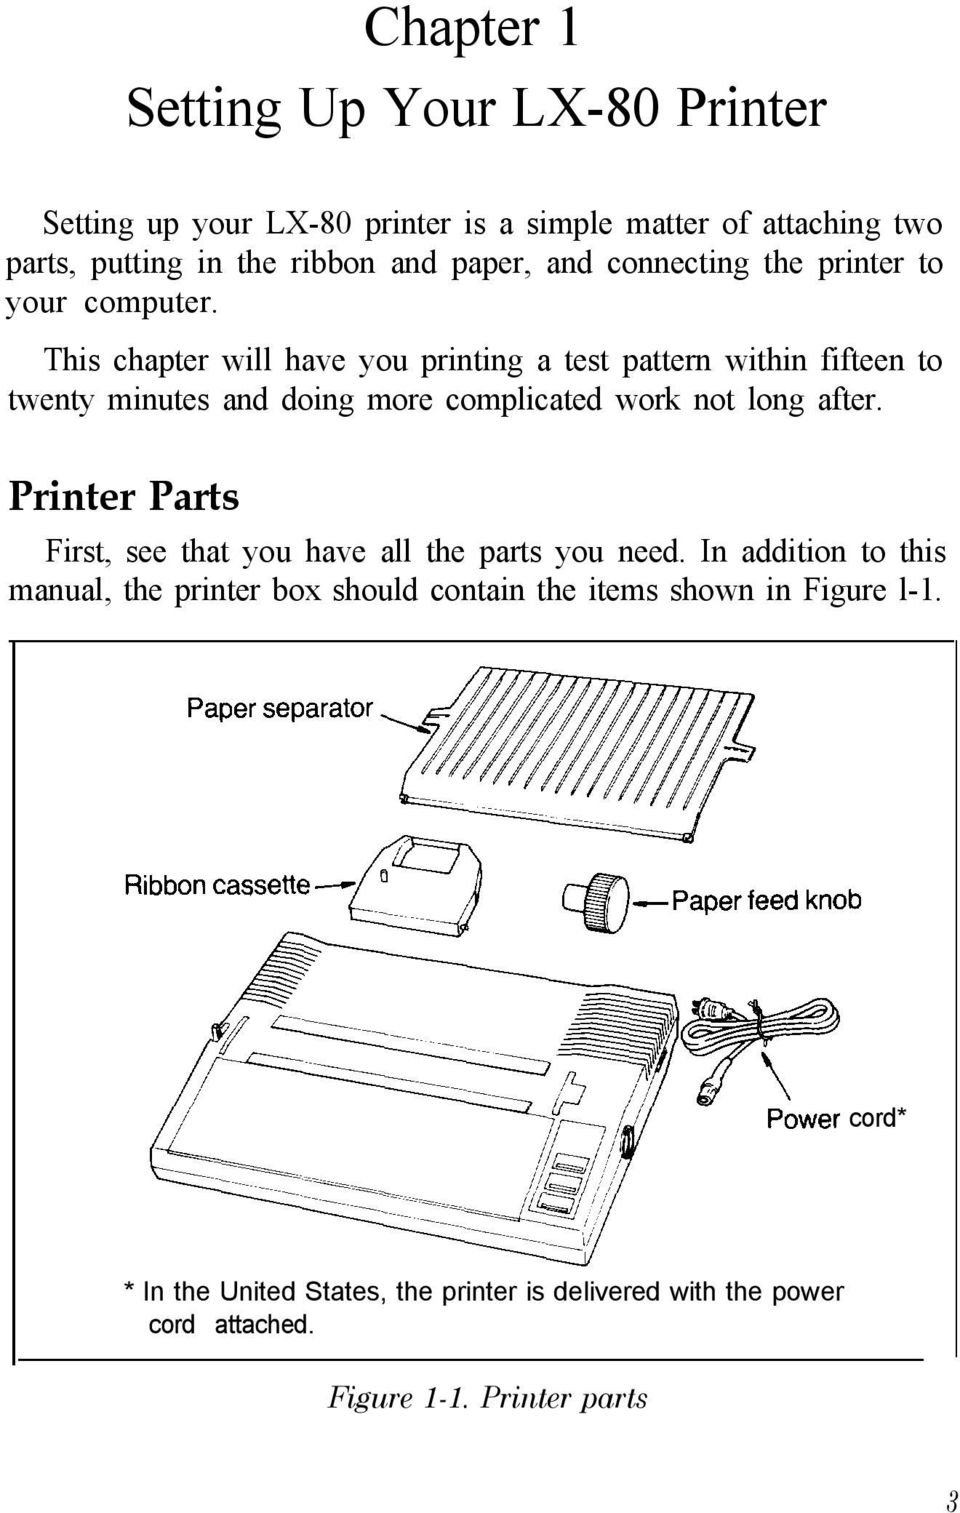 This chapter will have you printing a test pattern within fifteen to twenty minutes and doing more complicated work not long after.